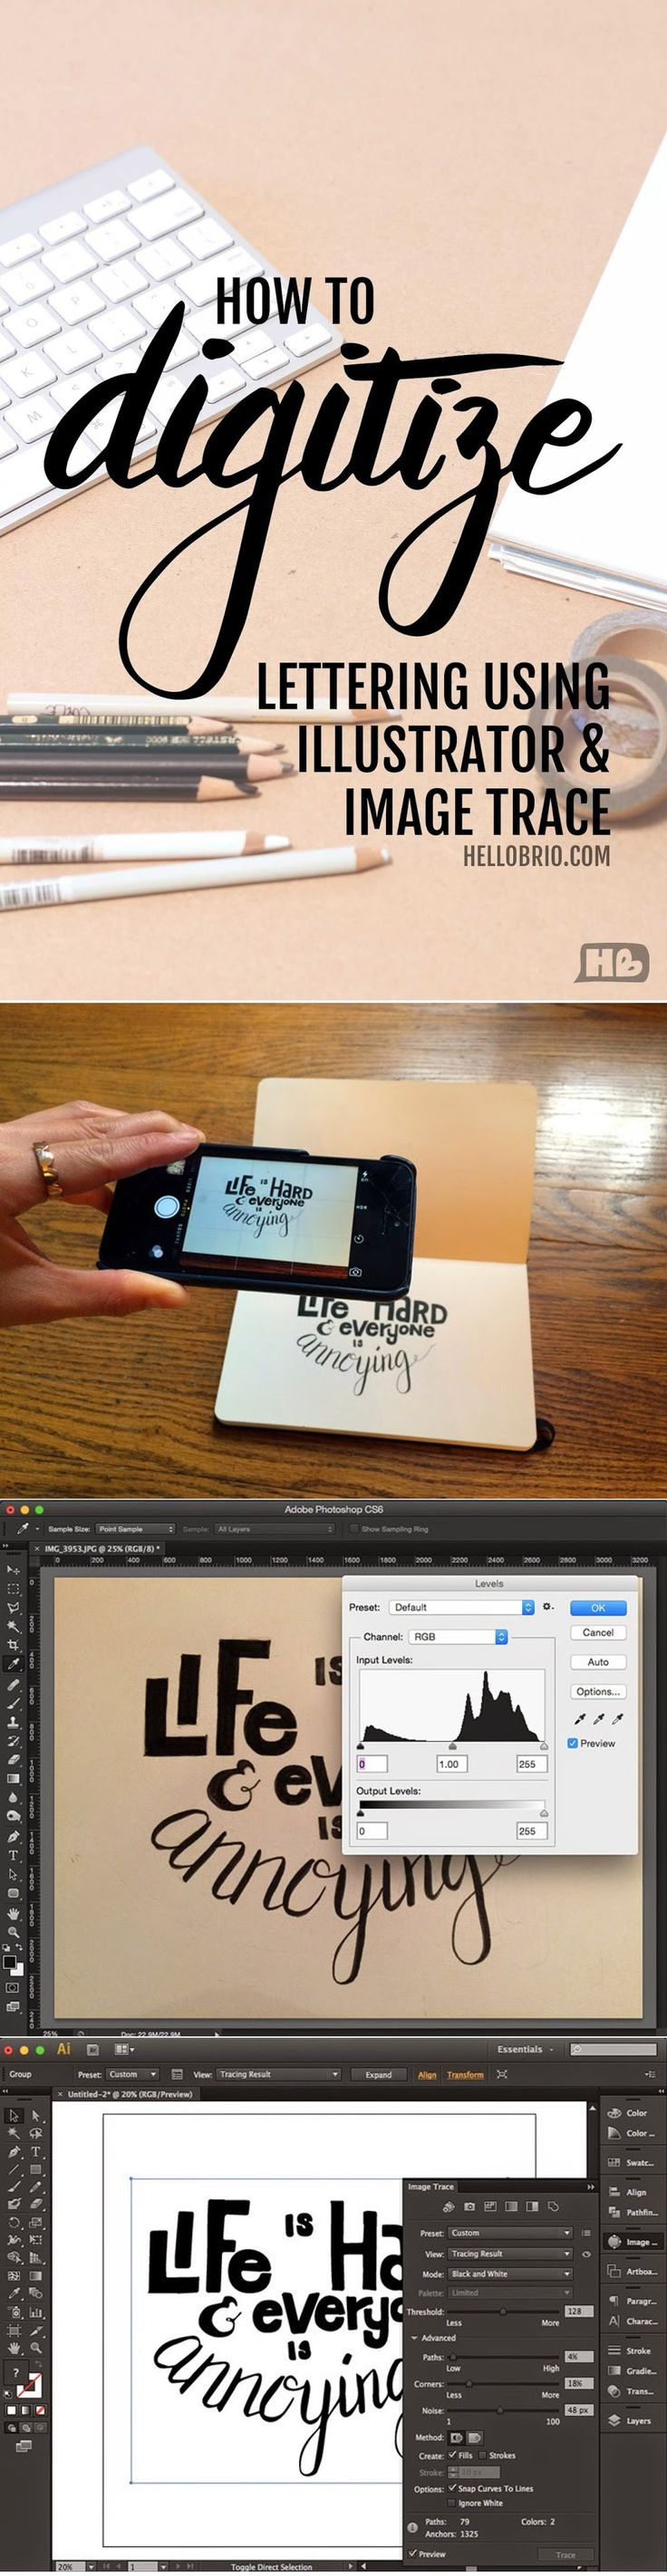 How to Digitize Your Hand Lettering Using Illustrator's Image Trace #calligraphy #handlettering #lettering #illustrator